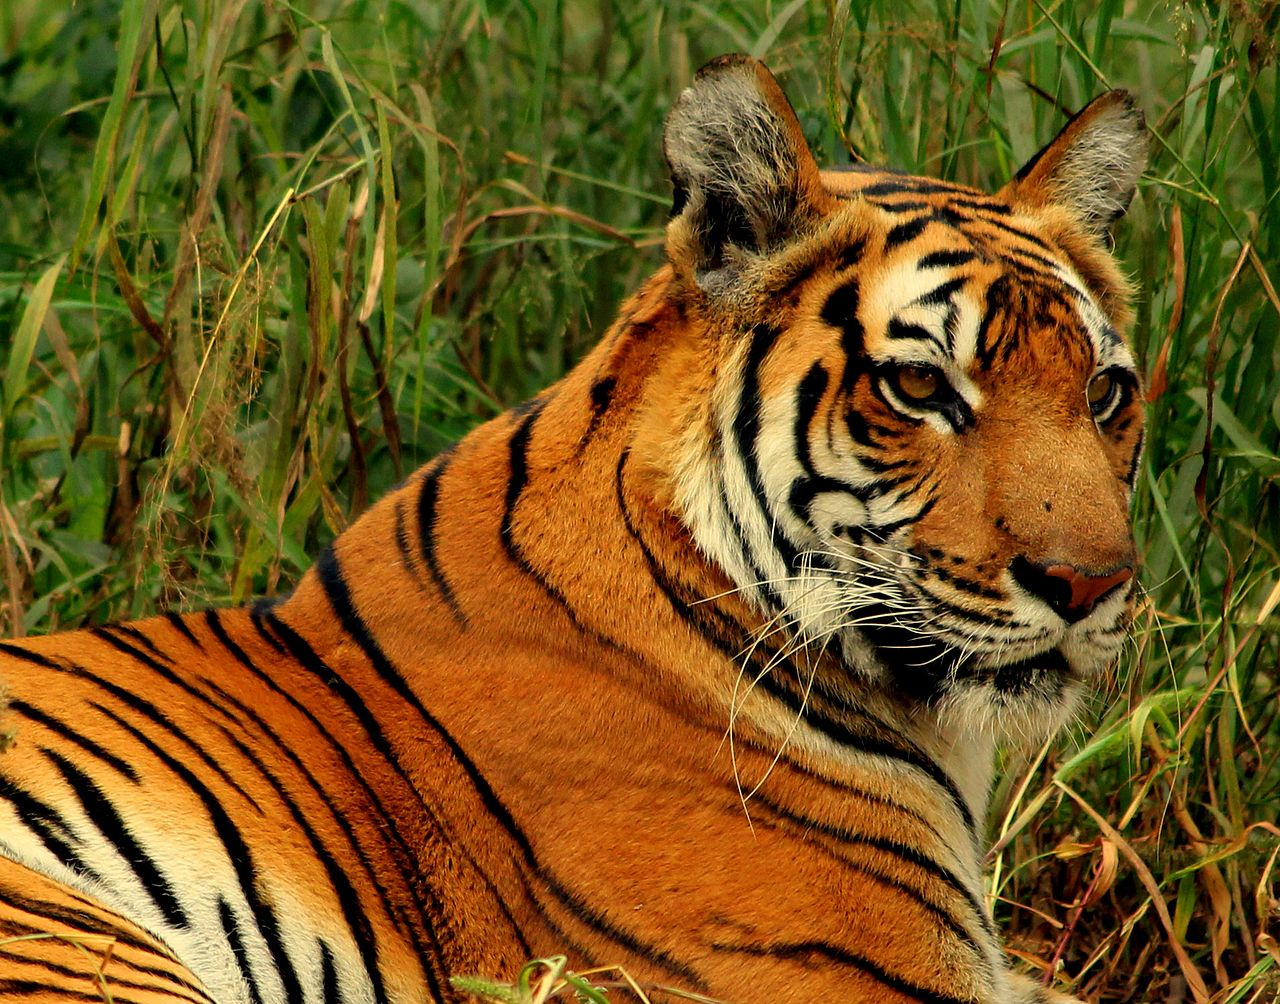 The Bengal Tiger. Credit: Wikimedia Commons